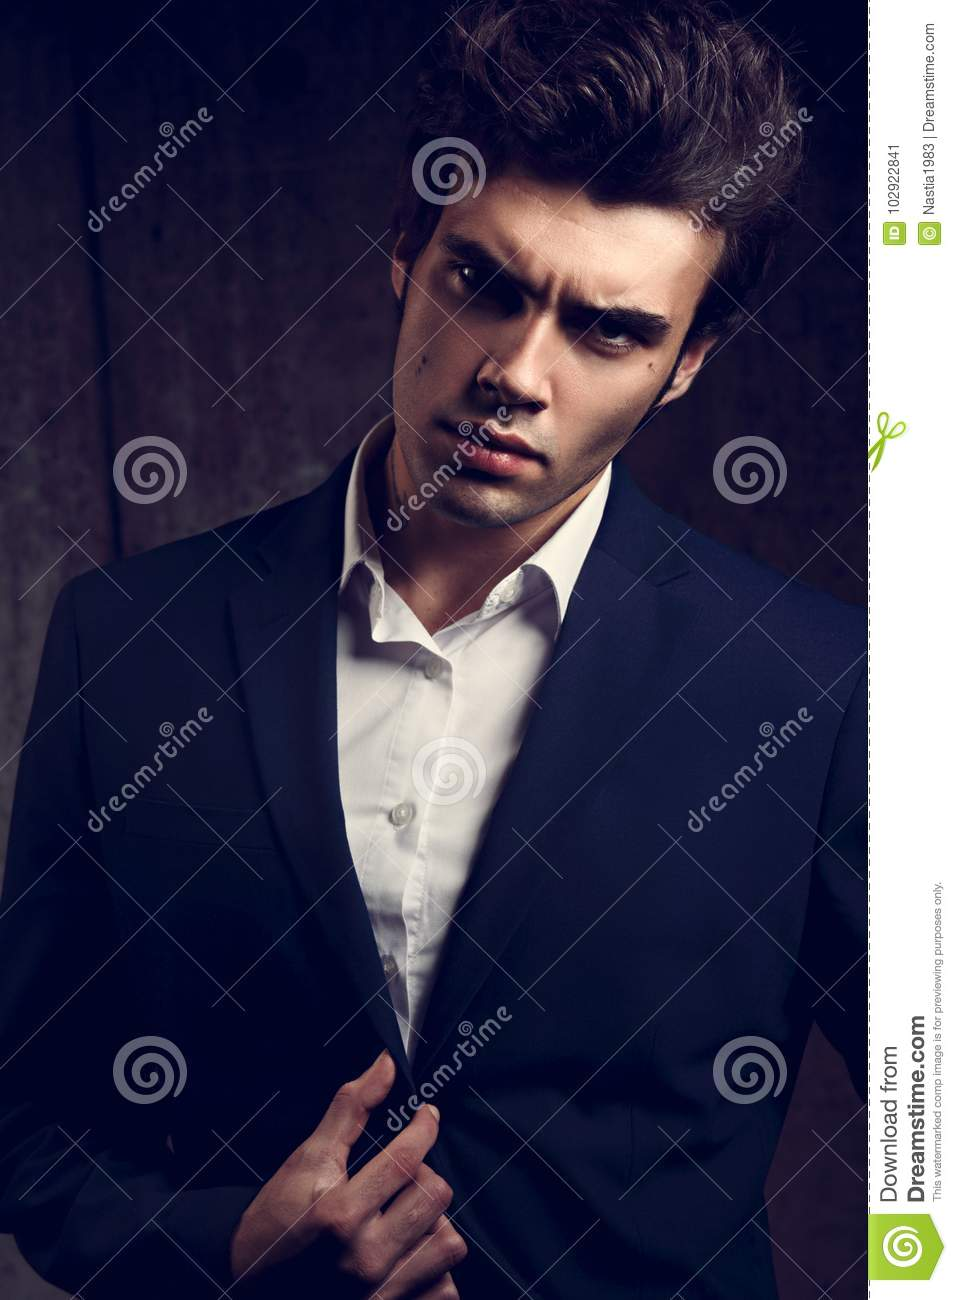 dfb210f2 serious handsome male model posing in blue fashion suit and white style  shirt on dark shadow background. Closeup fashion portrait. Toned color